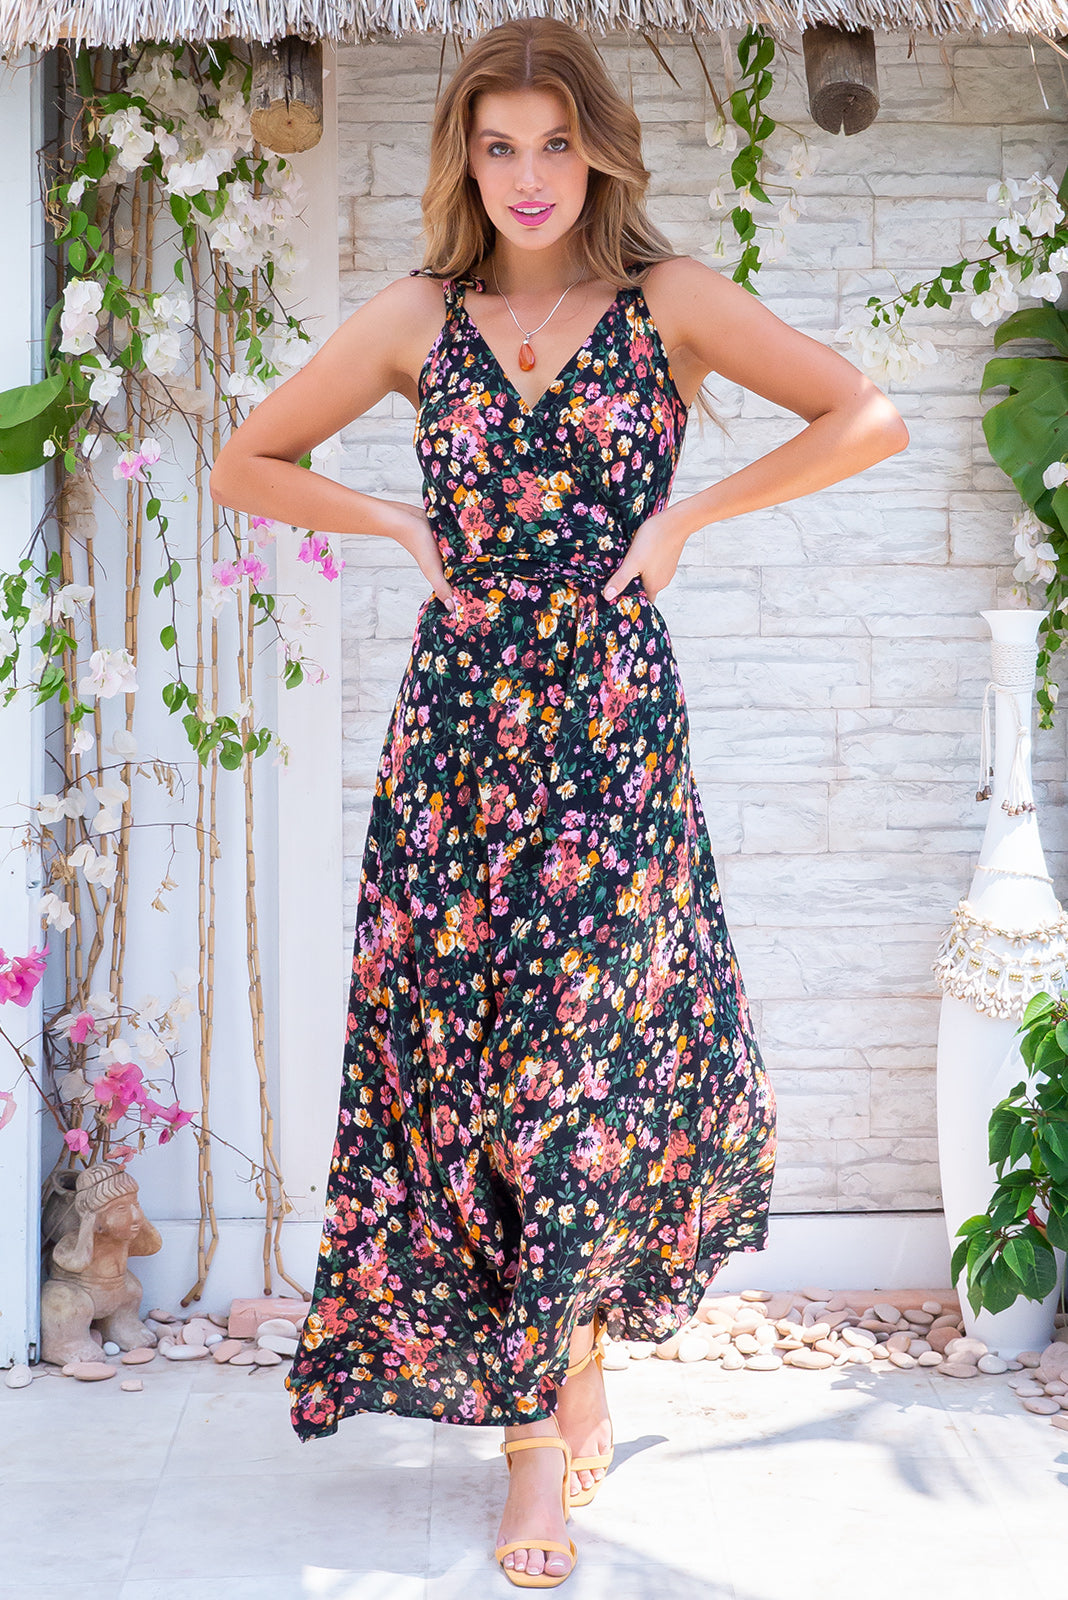 Byron Black Diamond Maxi Wrap Dress is a romantic wrap-style dress featuring shirred elastic back waist, tie attached at waist, adjustable shoulder ties, black base with multi-coloured floral design in woven 100% rayon.